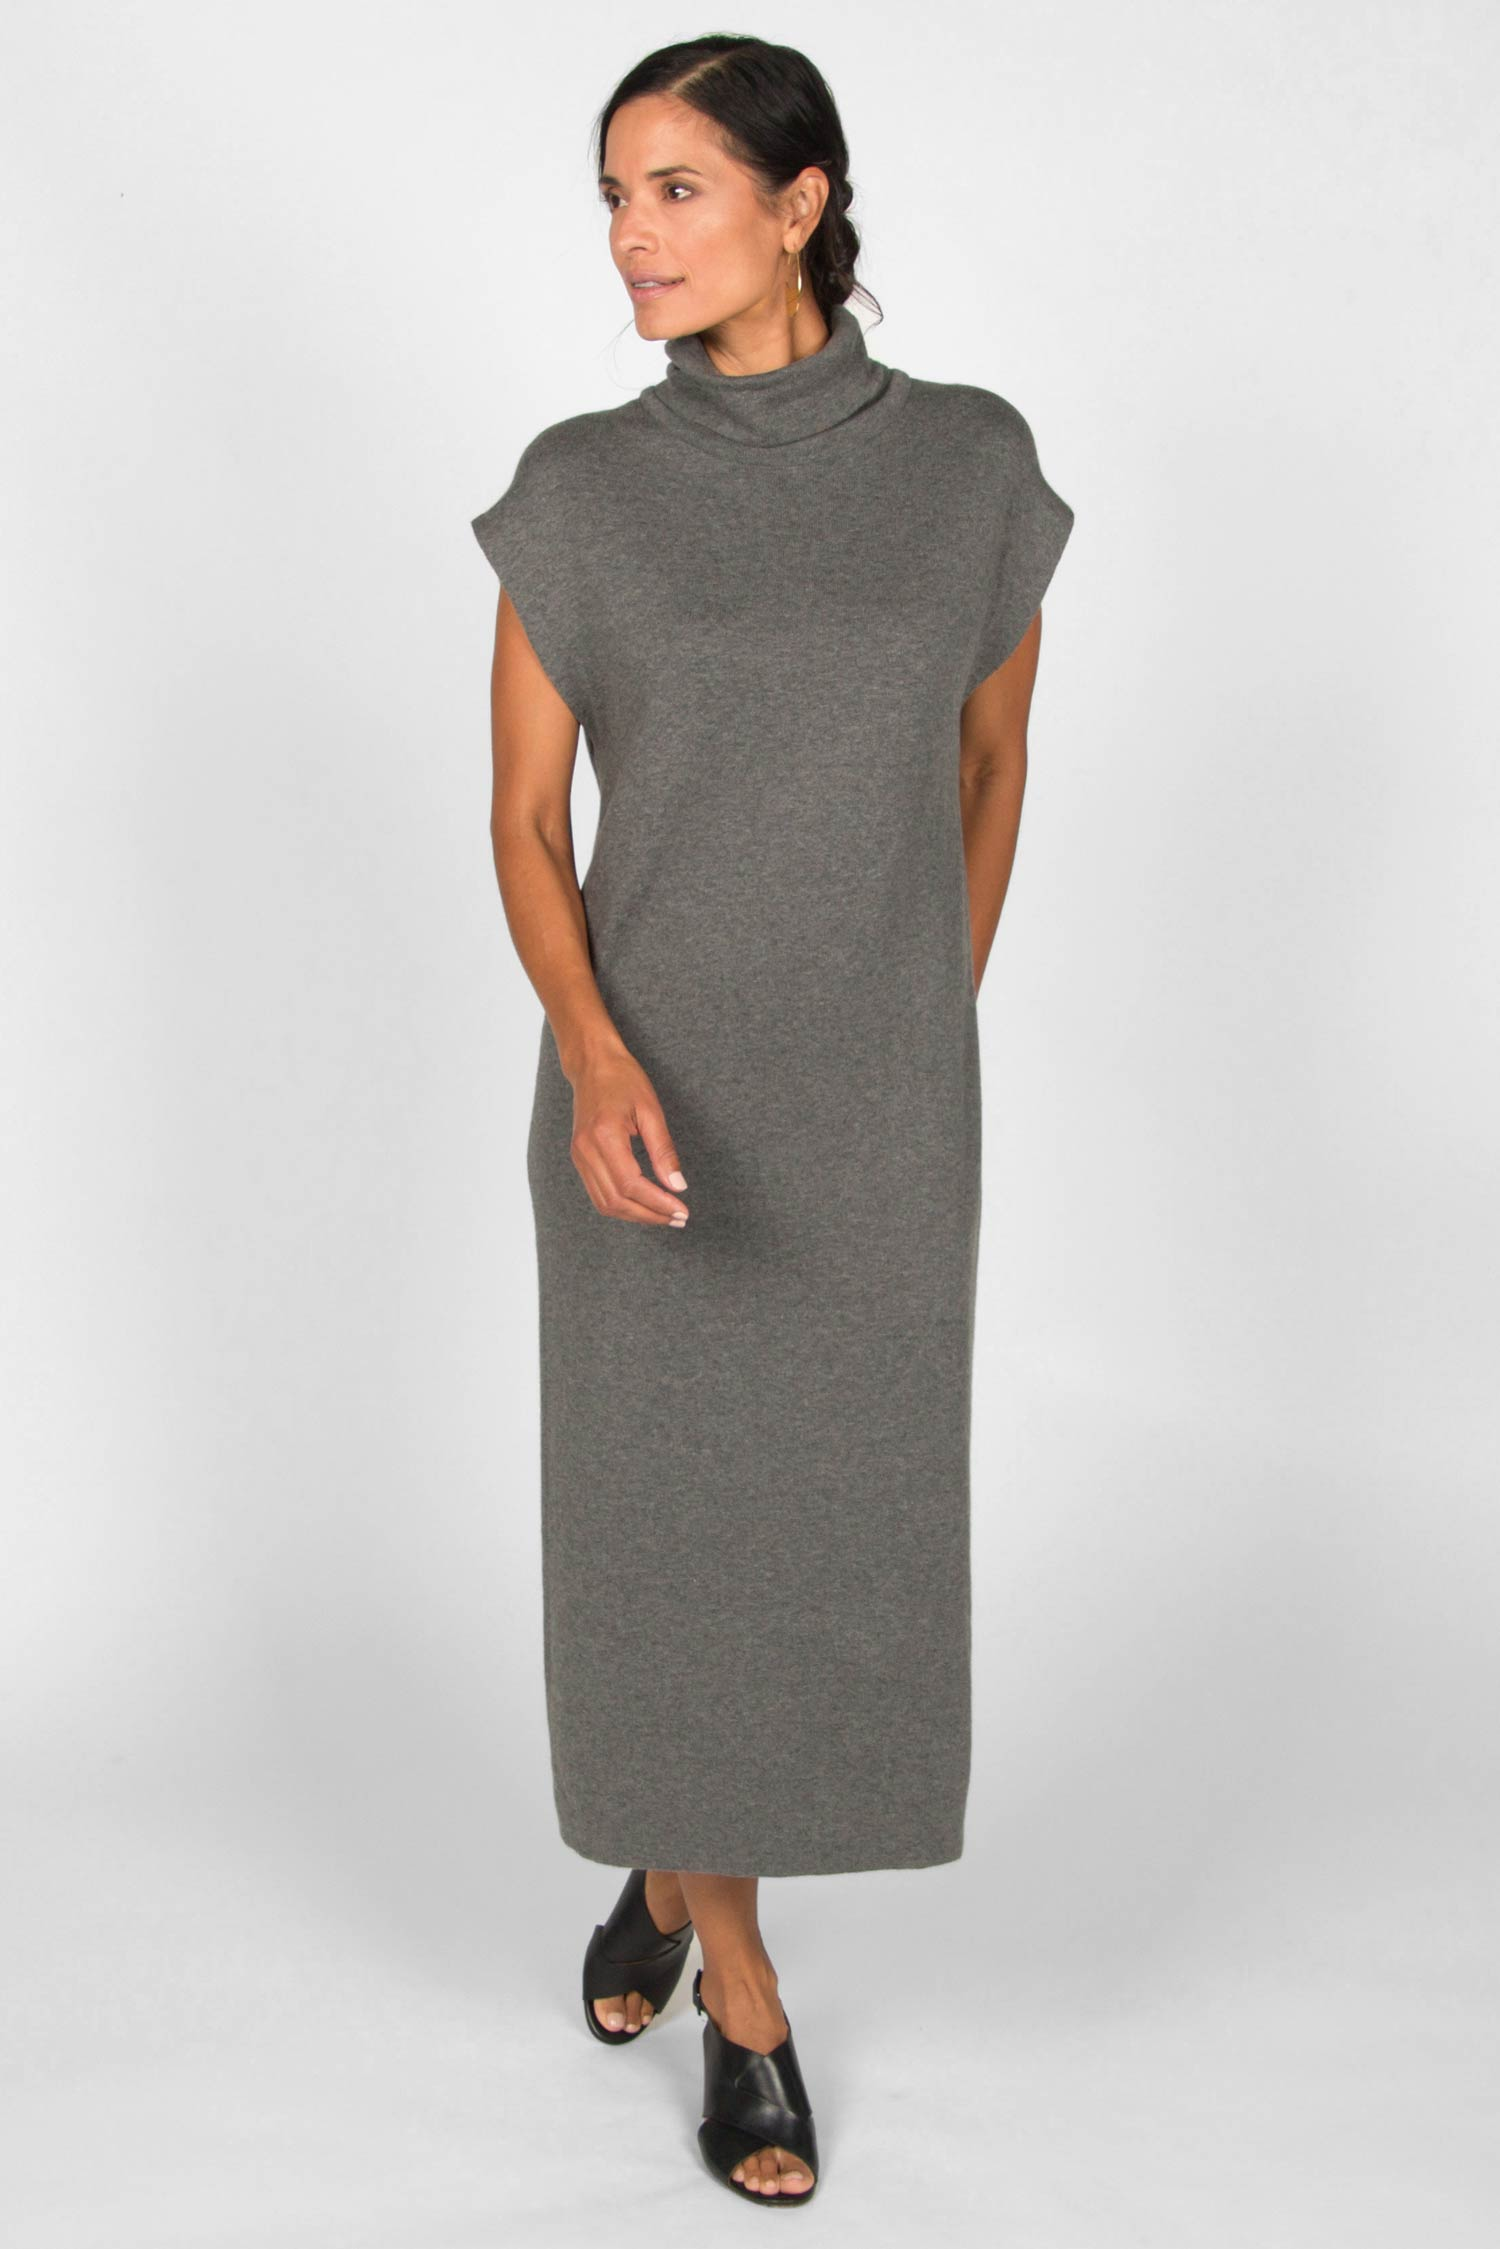 Cap Sleeve Knit Dress - Indigenous